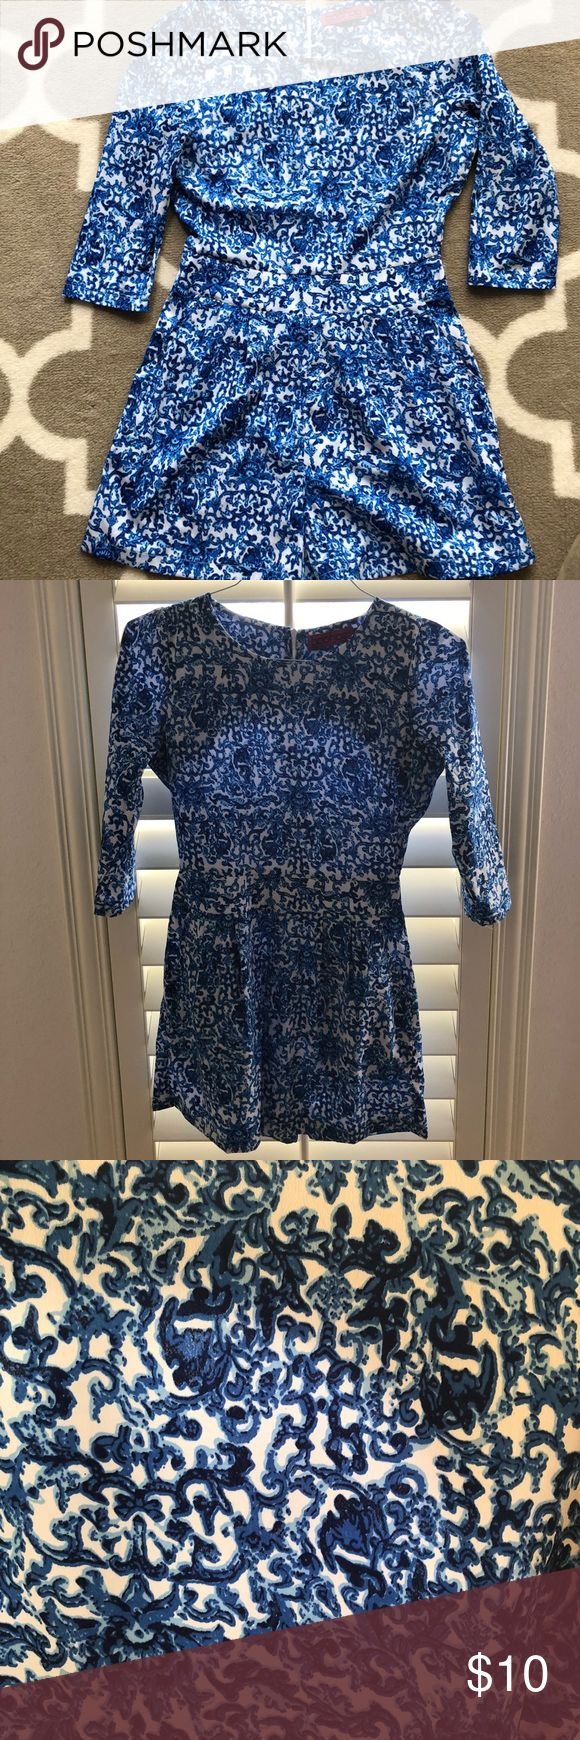 Blue and white print romper Blue/white print romper (playsuit) is lightweight and comfortable, super cute. Only worn once! Boohoo Other